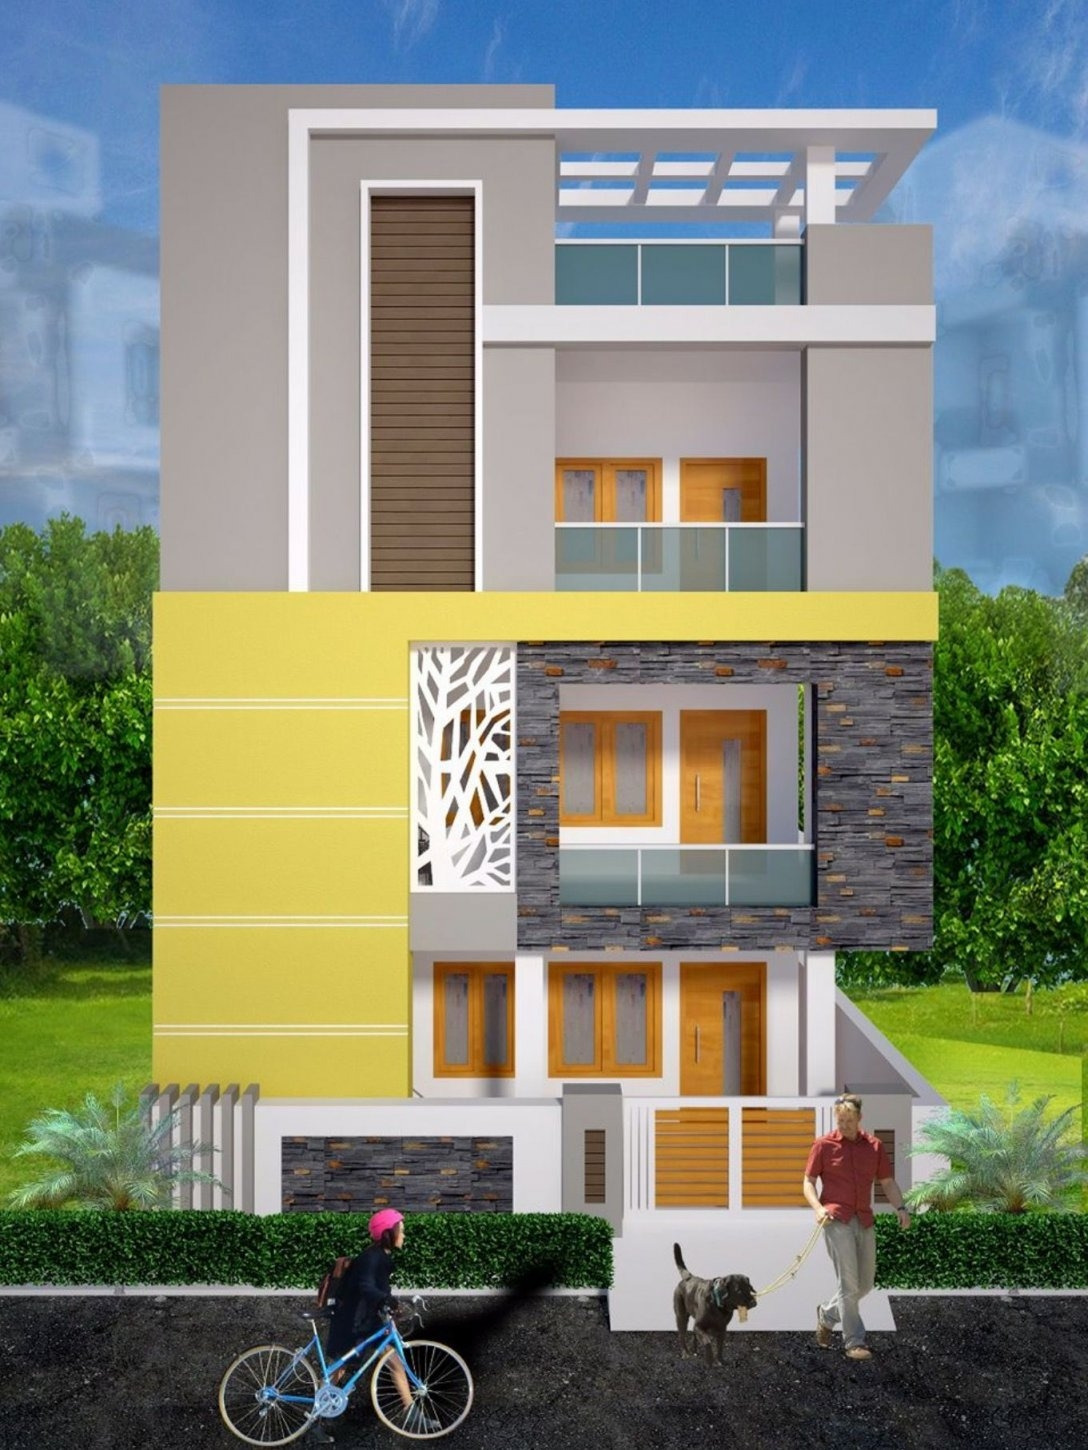 home design home model in 2019 house front design house within home model design